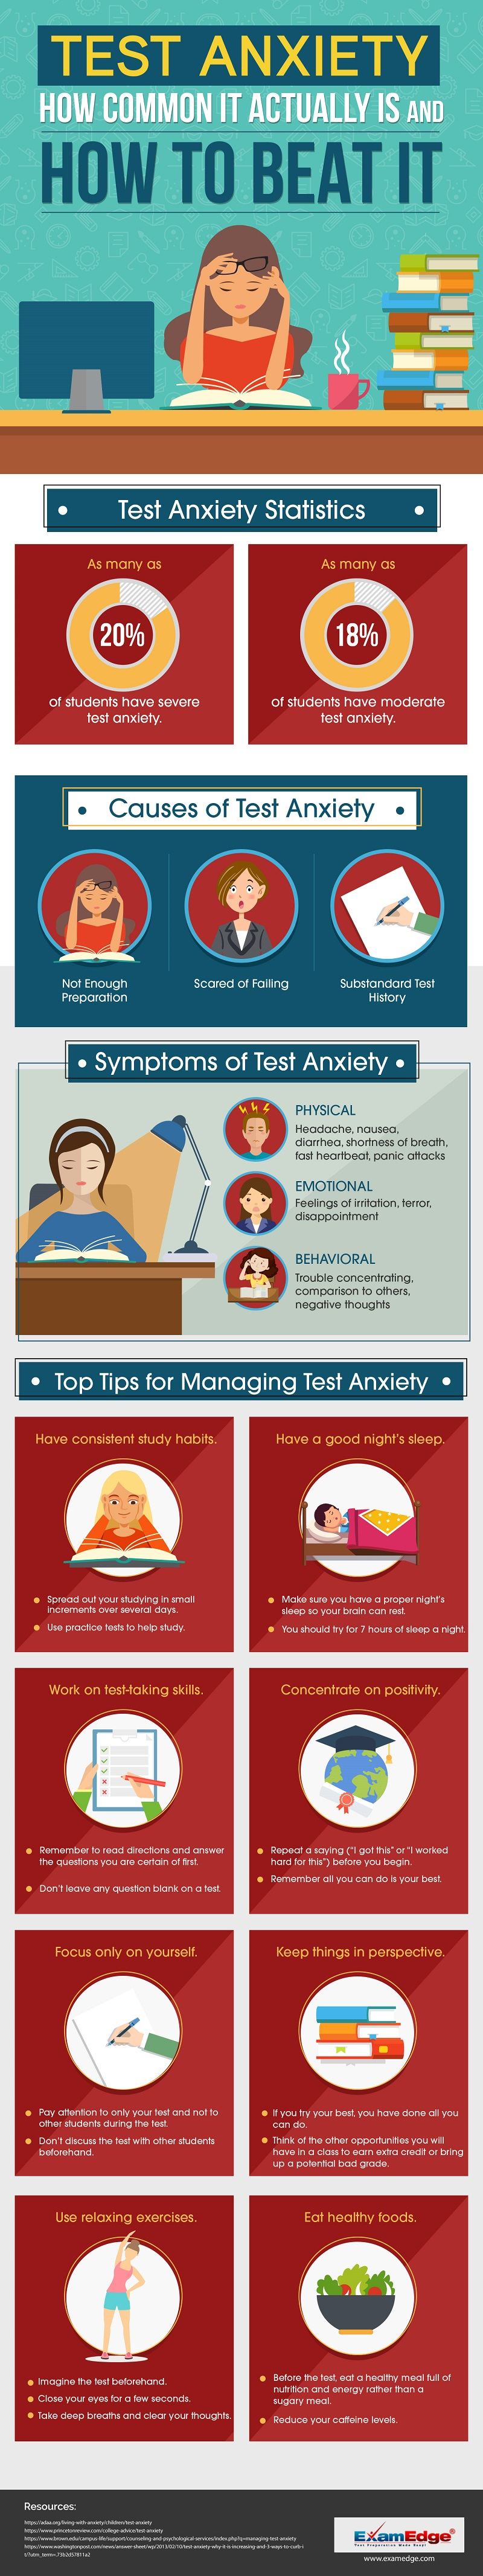 Facts about test anxiety image: how common is it and how to beat it.